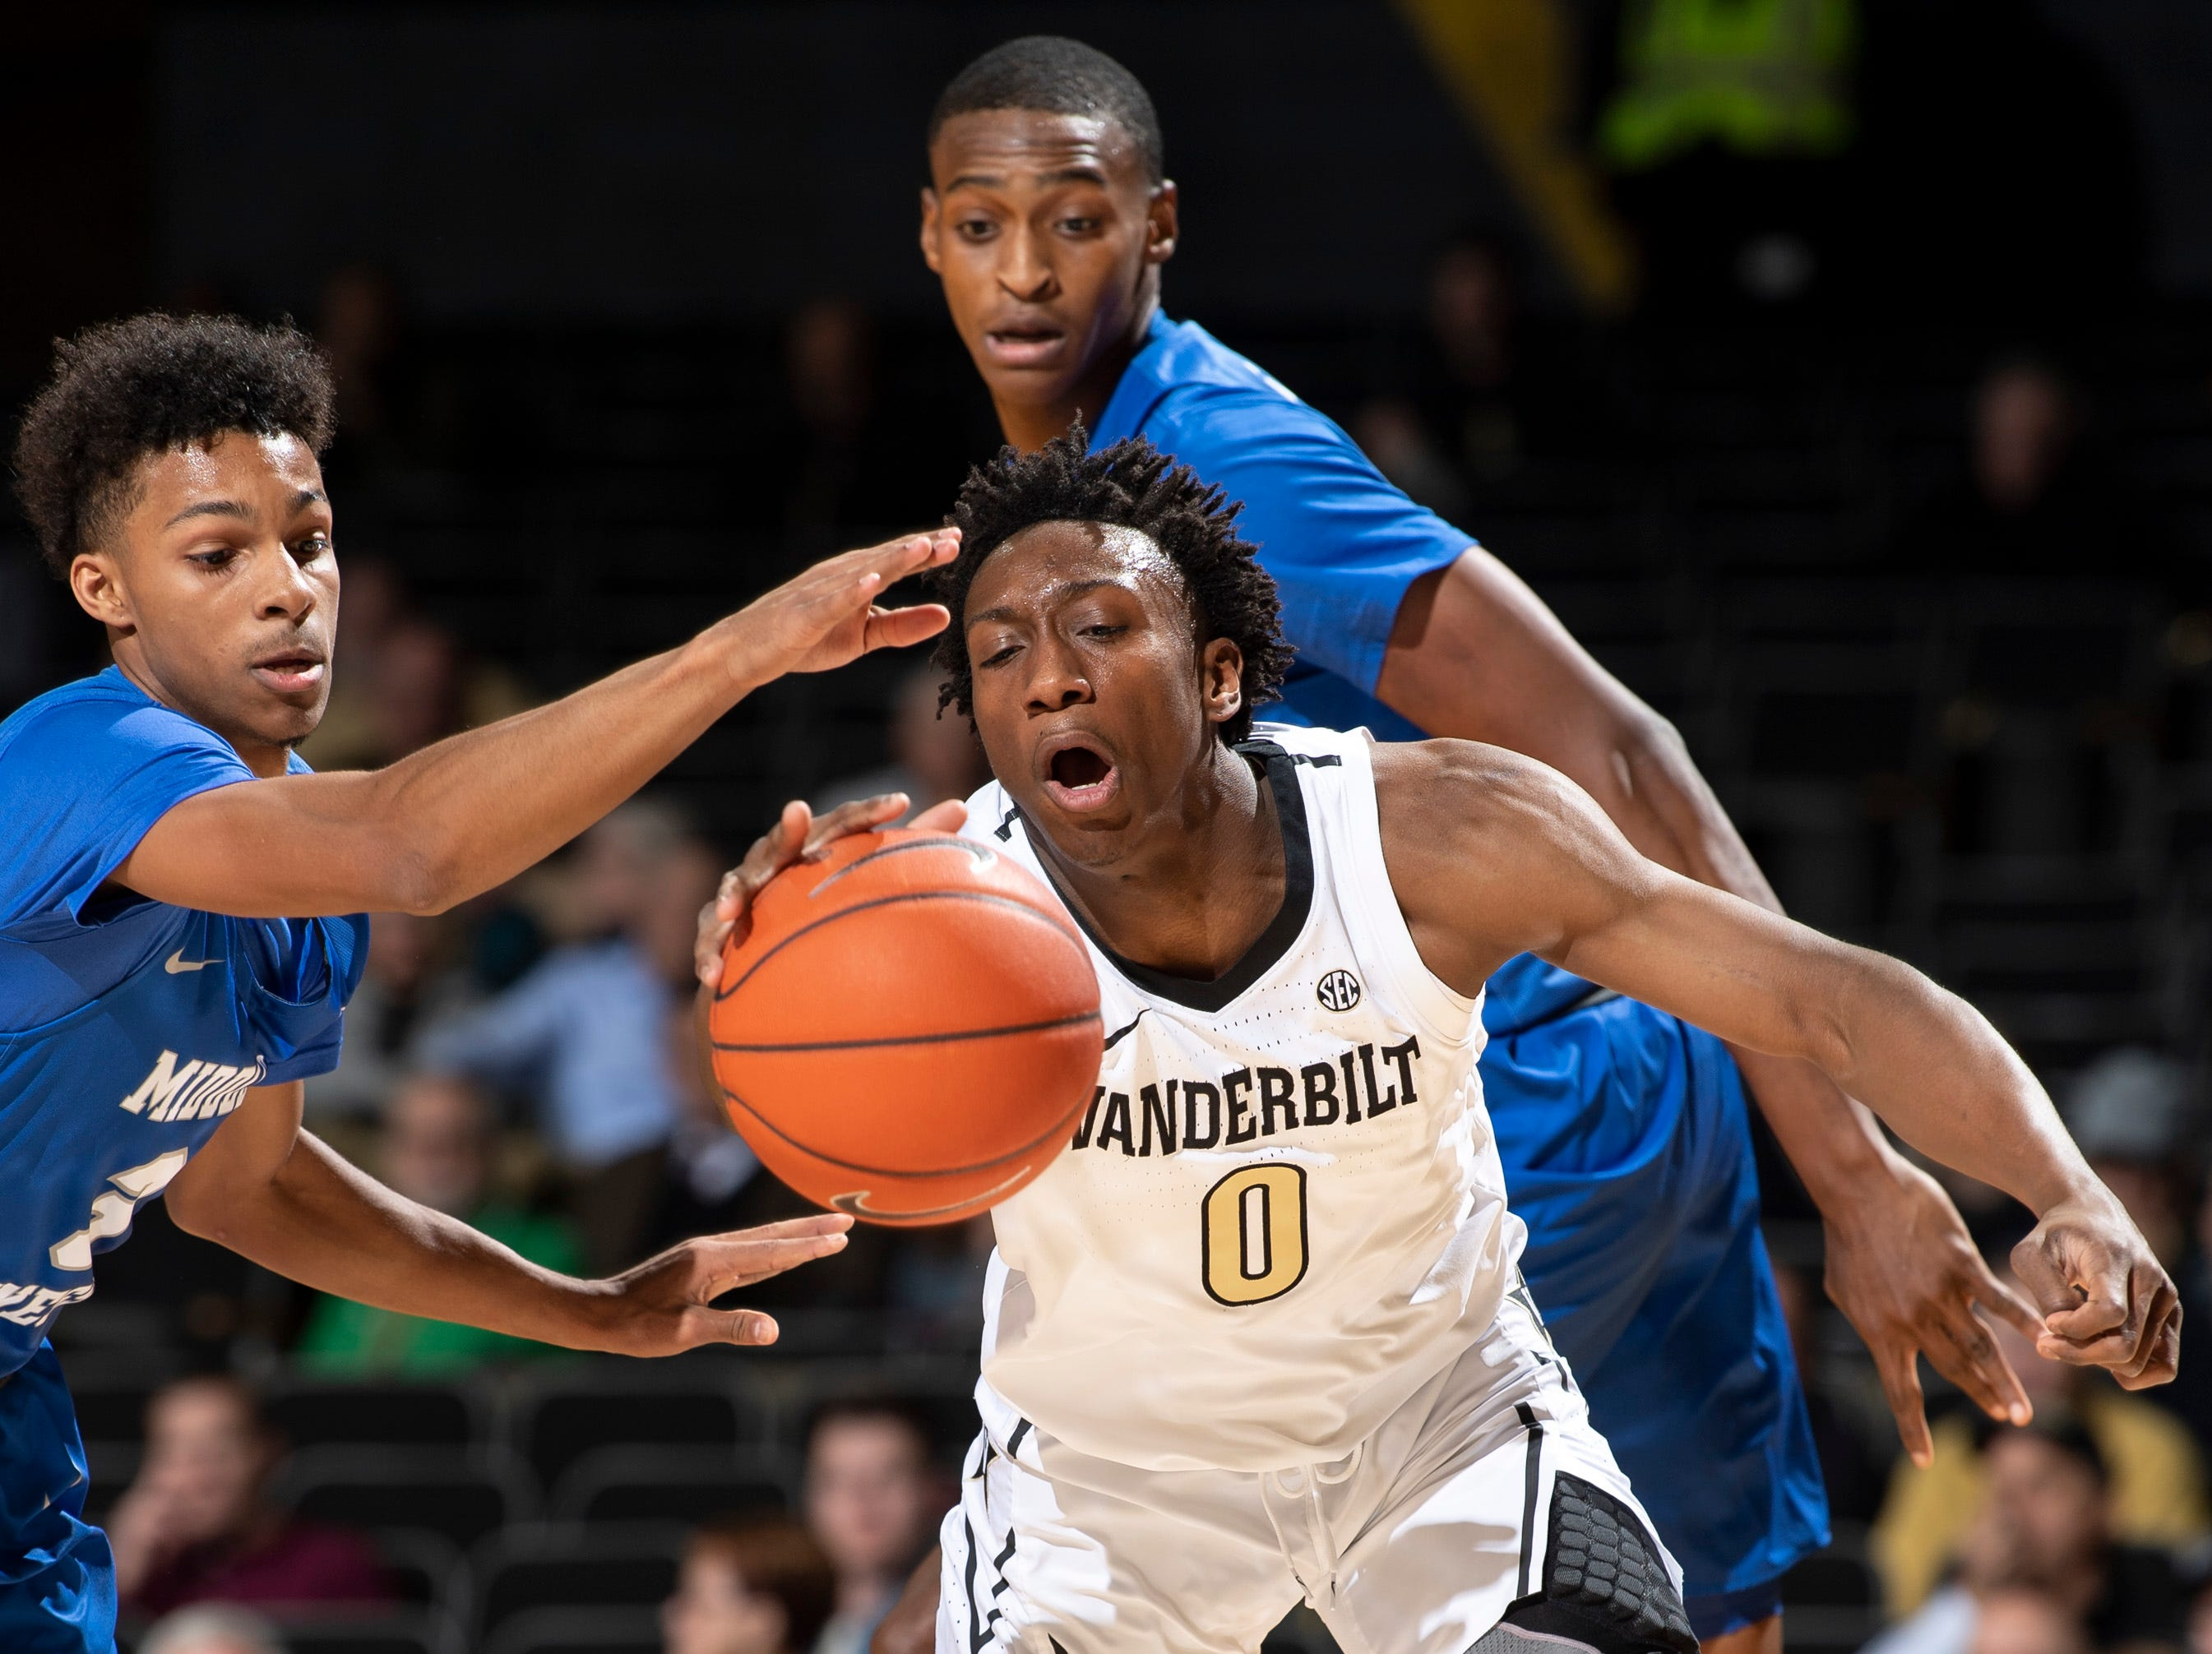 Vanderbilt guard Saben Lee (0) leans in for the ball next to MTSU guard Donovan Sims (3) during the first half at Memorial Gym in Nashville, Tenn., Wednesday, Dec. 5, 2018.